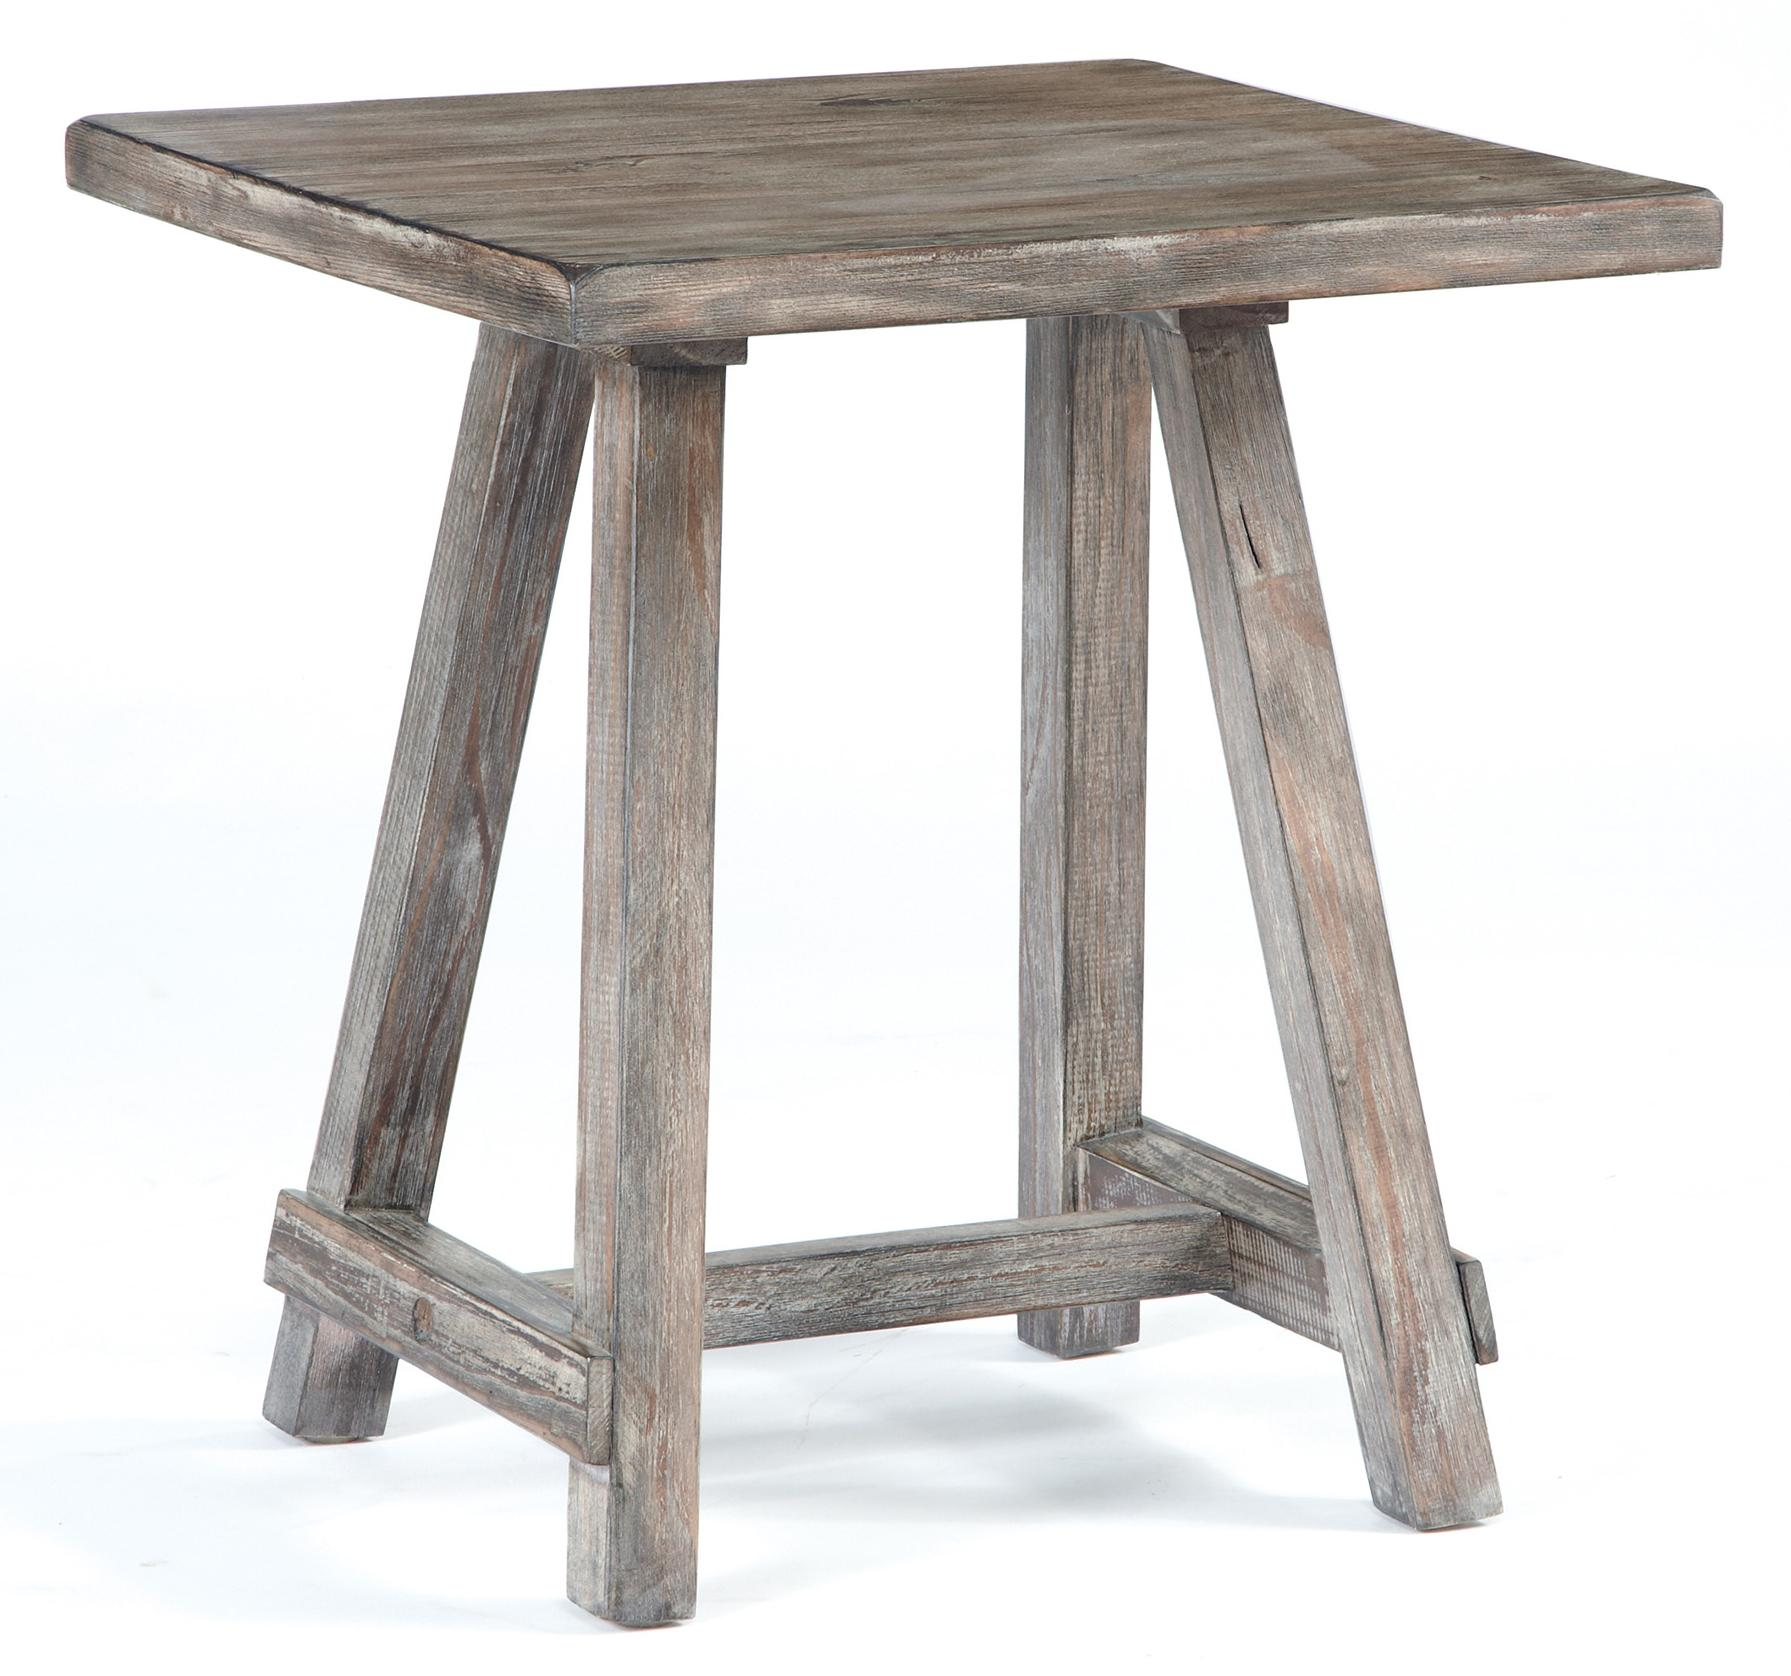 Signature Design by Ashley Vennilux Chairside End Table - Item Number: T500-502